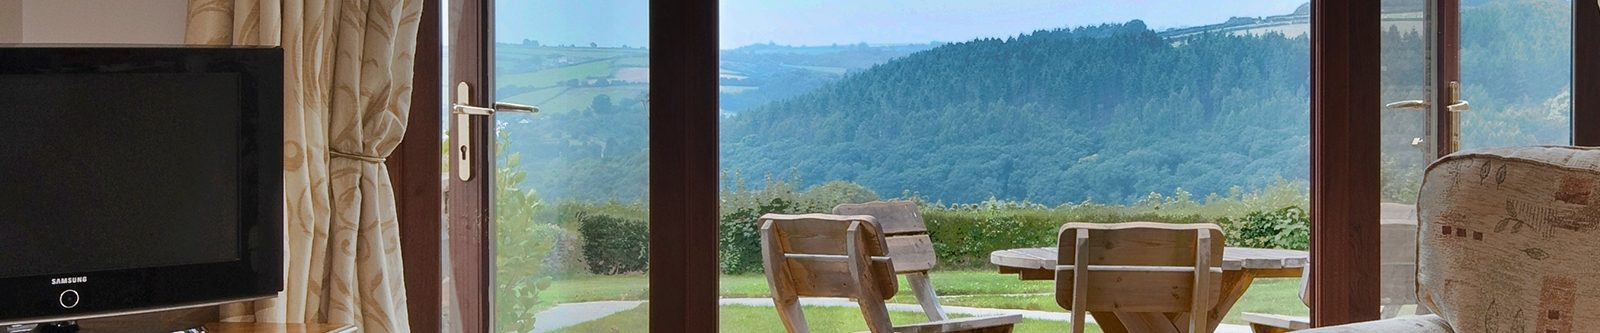 view from a cottage